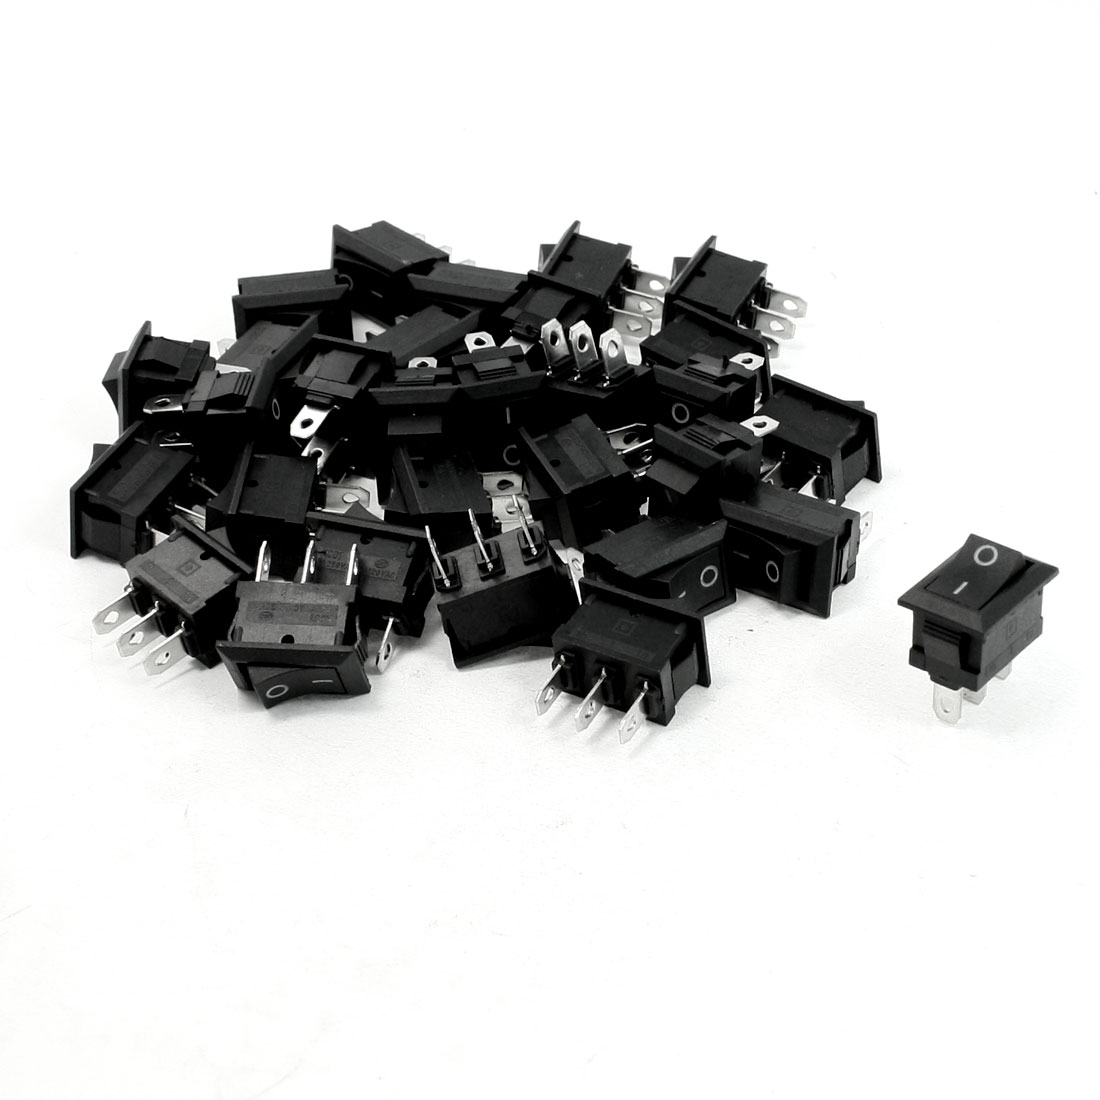 30 Pcs AC 250V 6A AC 125V 10A 2 Terminals SPDT Black Button Rocker Switch